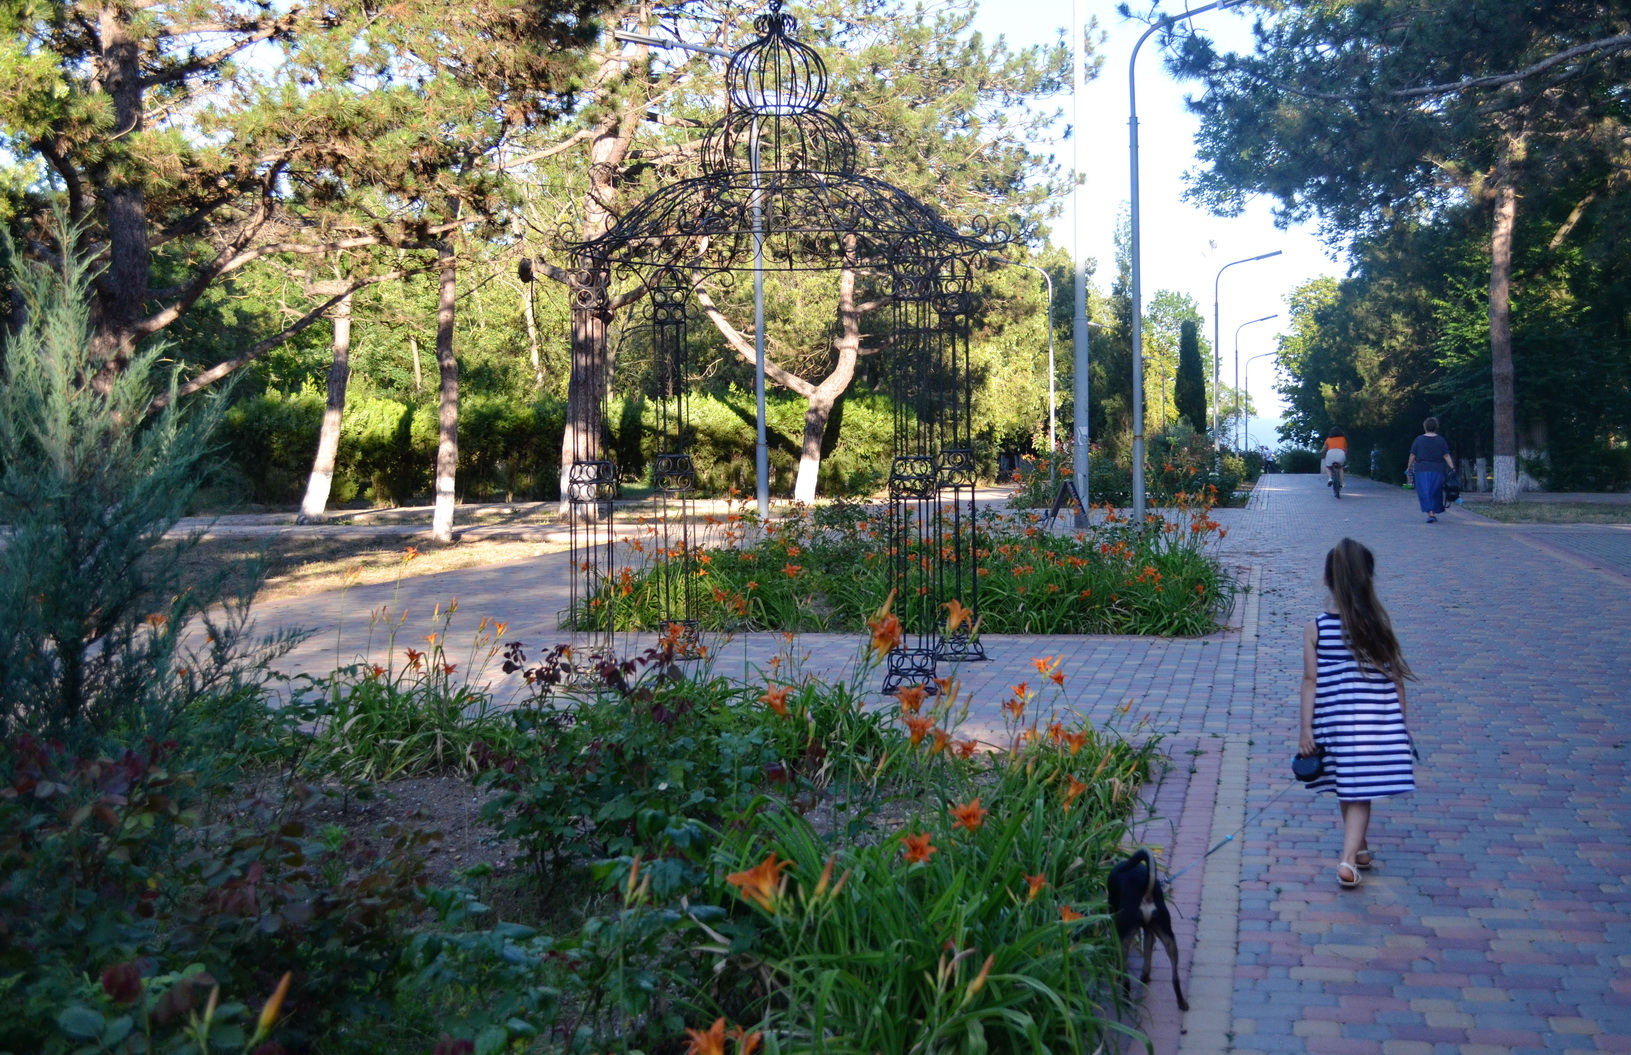 kerch arshincevo 26 06 2020 park 24